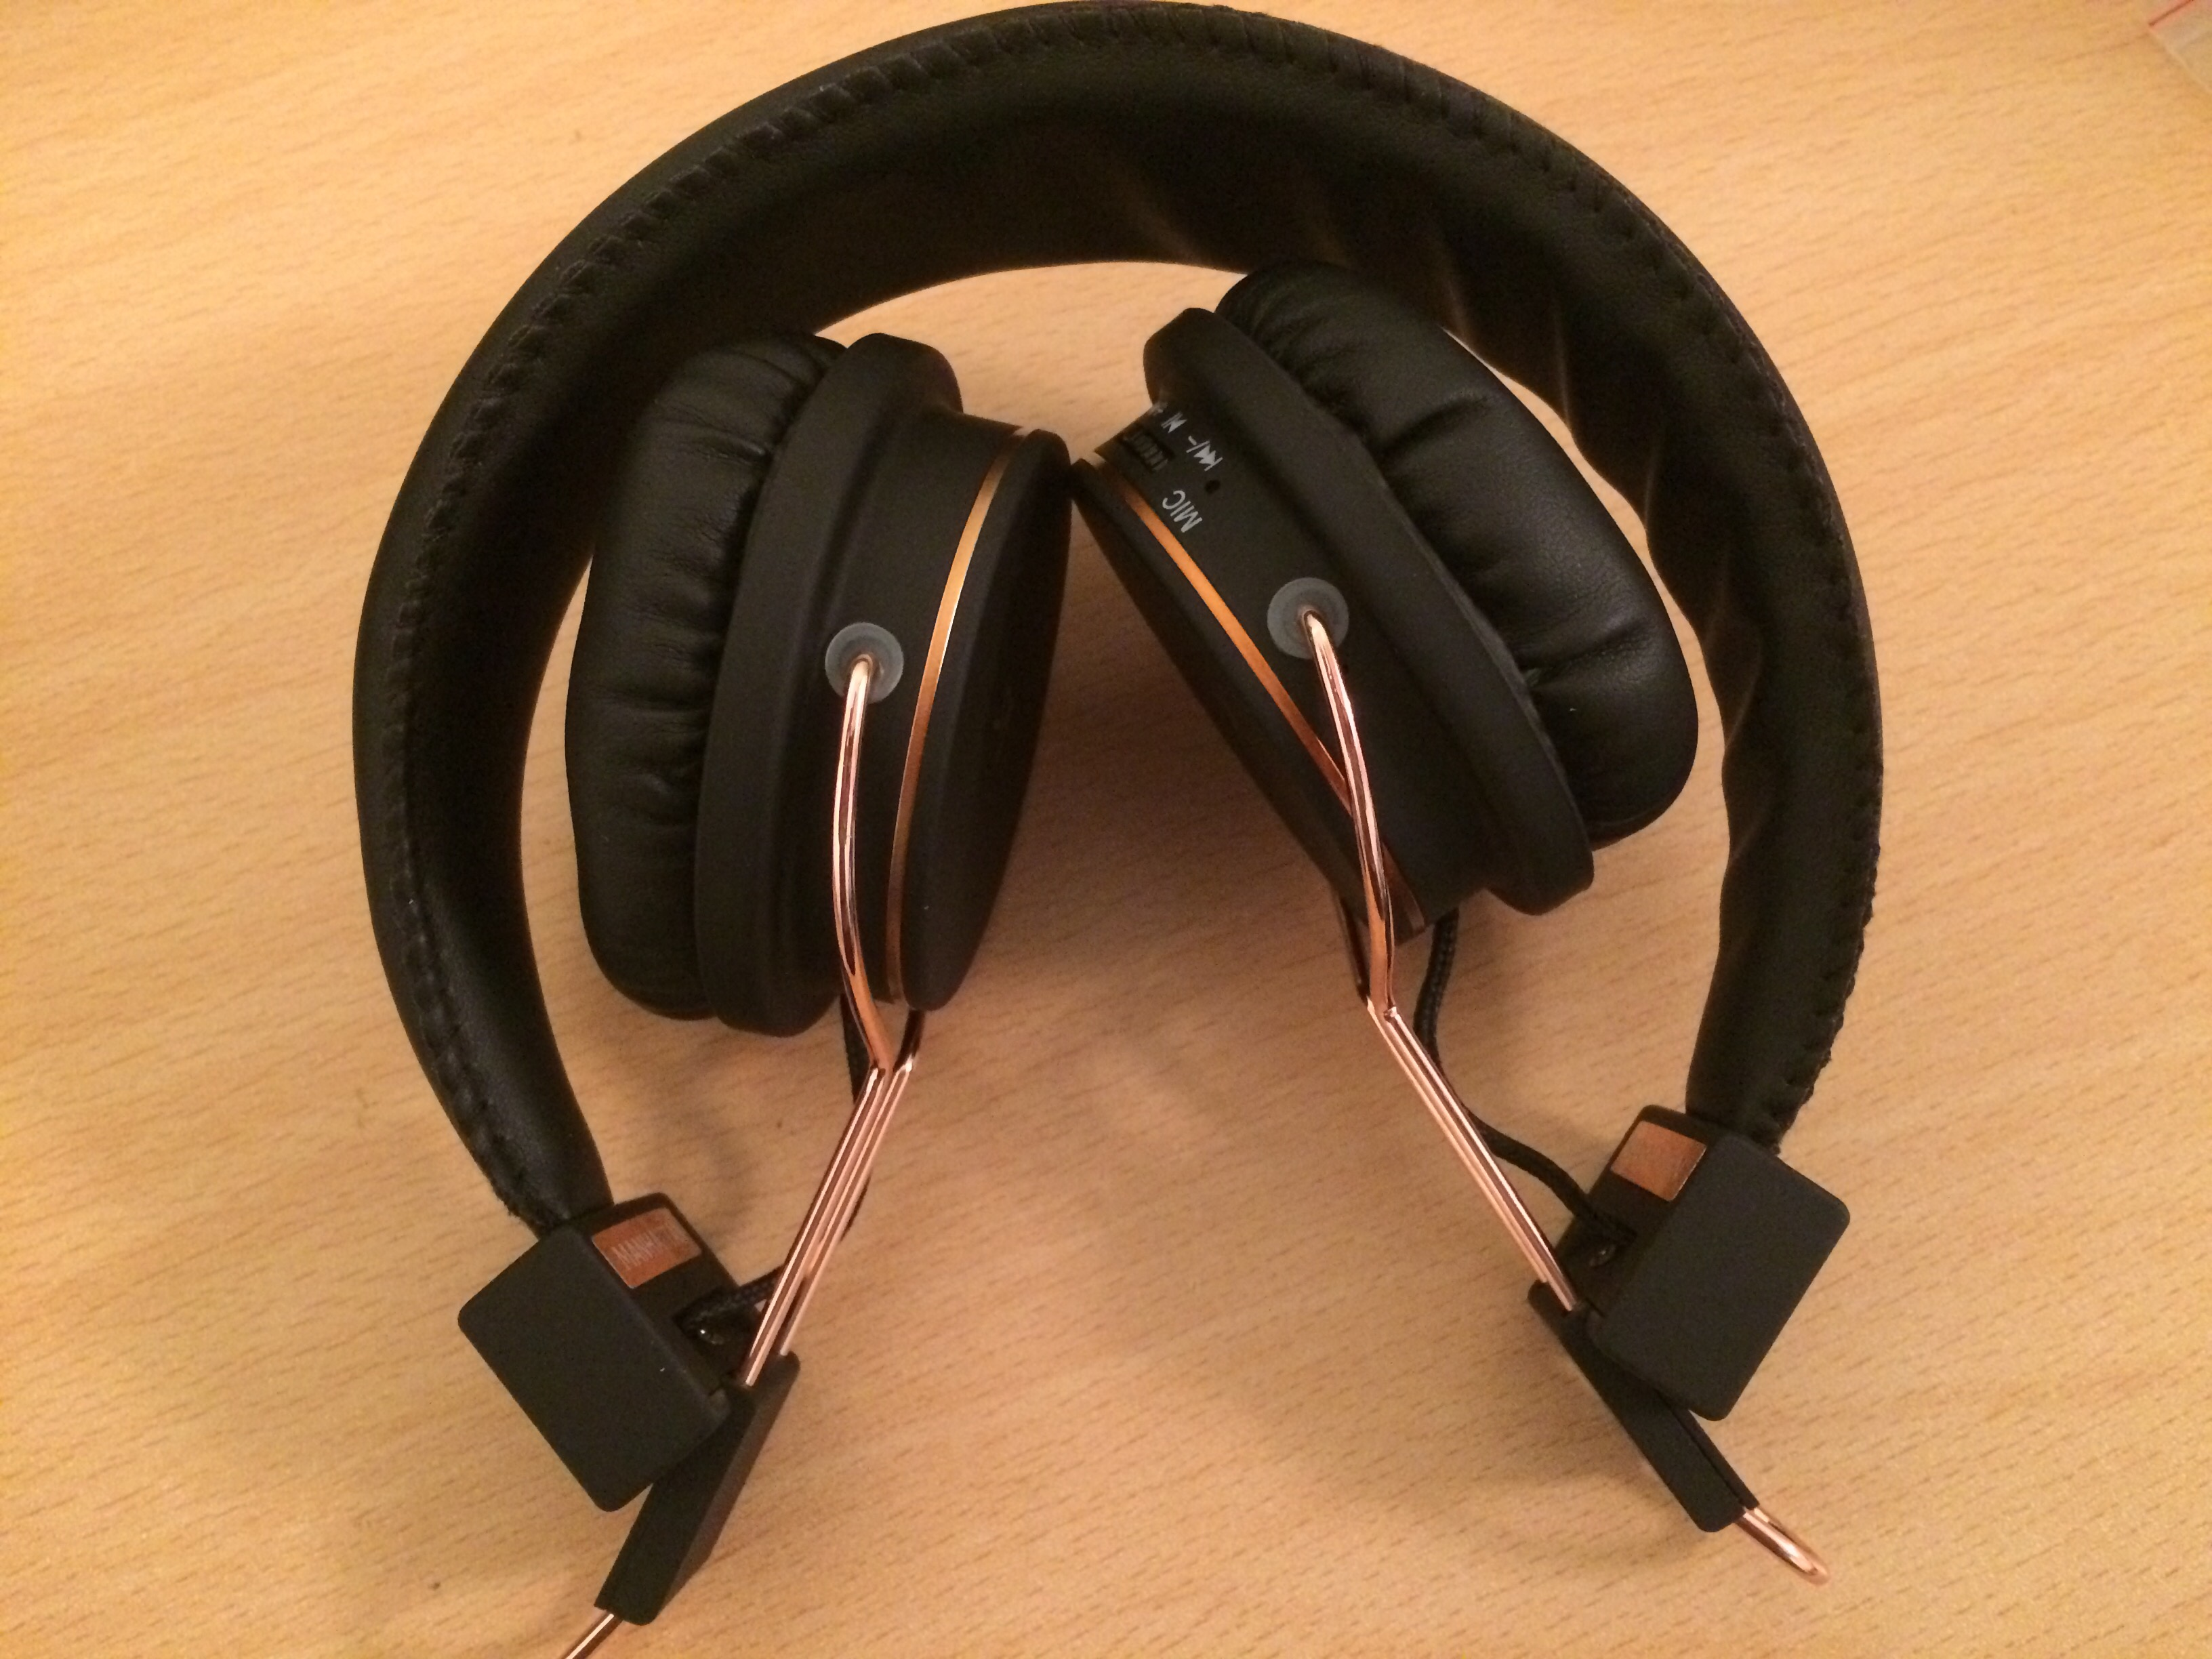 4a178a1f0f4f46 Kitsound Harlem Wireless Over Ear Headphones With Microphone - Image ...